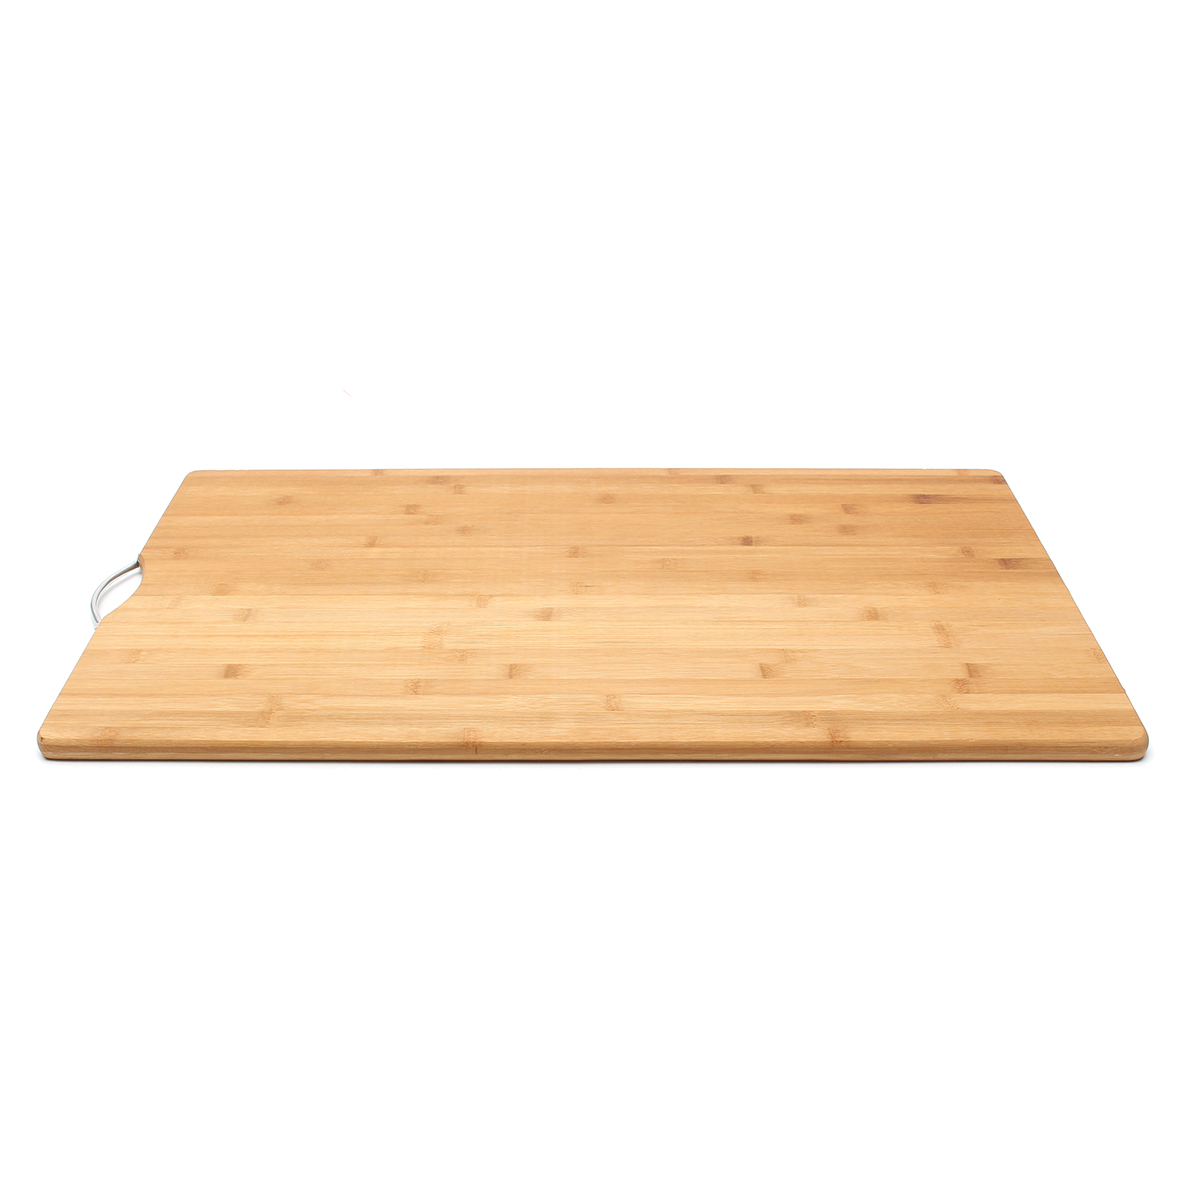 extra large carbonised kitchen bamboo cutting chopping board with hook kitchen cutting board. Black Bedroom Furniture Sets. Home Design Ideas